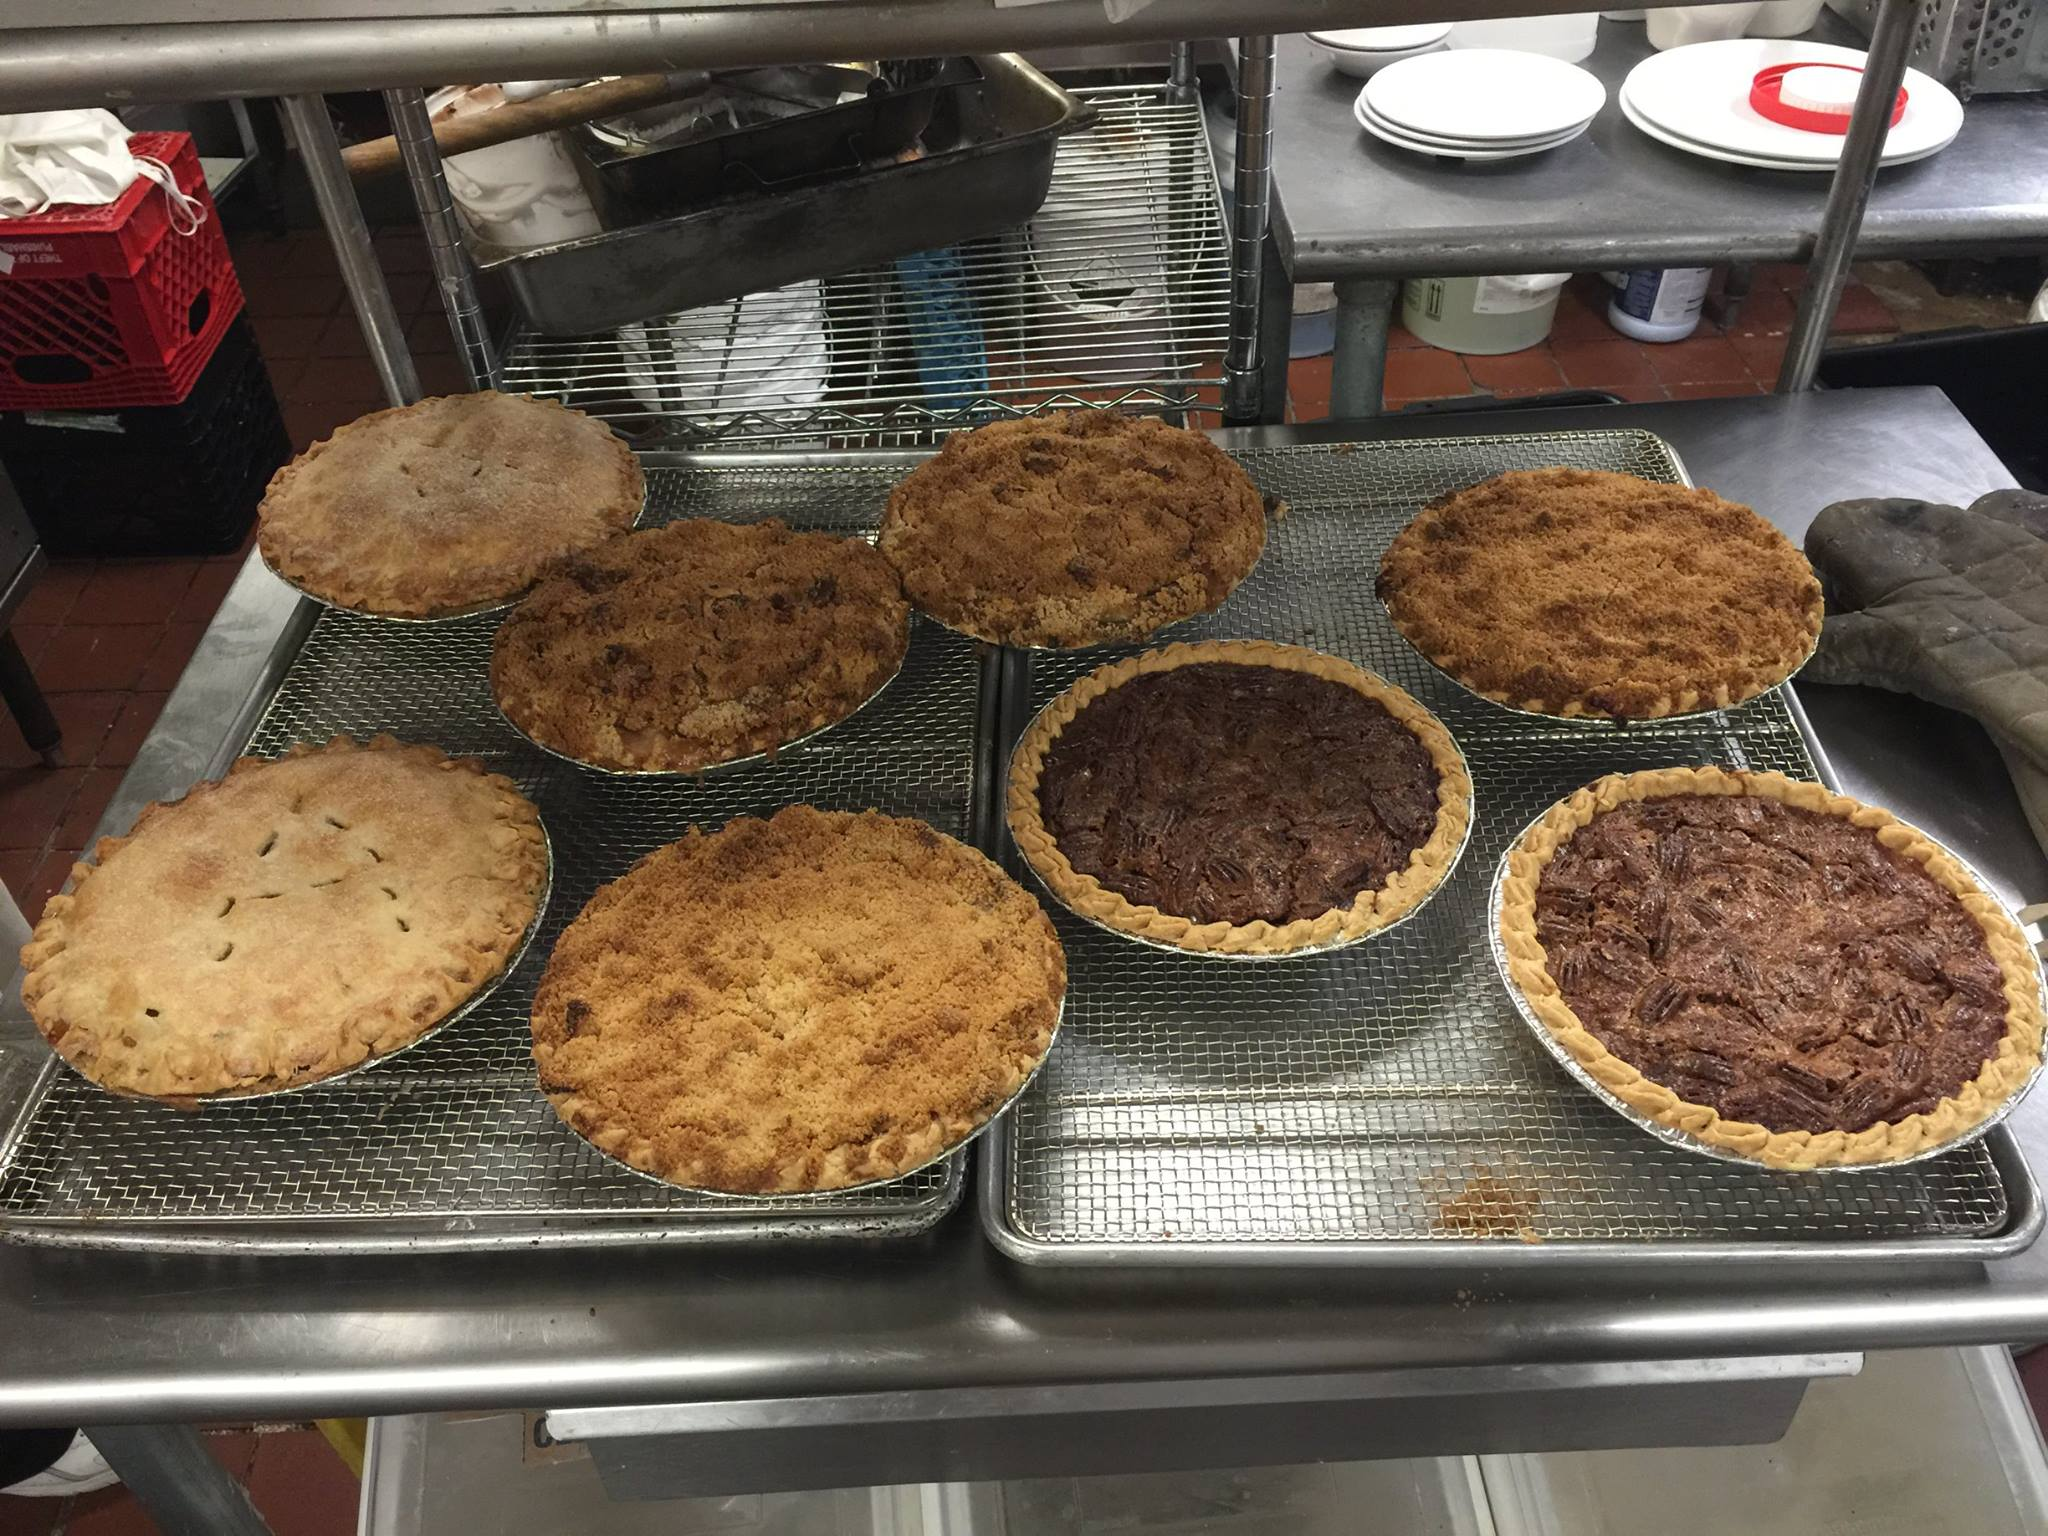 The staff at Chick & Ruth's are being taught how to make homemade pie, as the restaurant switches over from frozen pies.